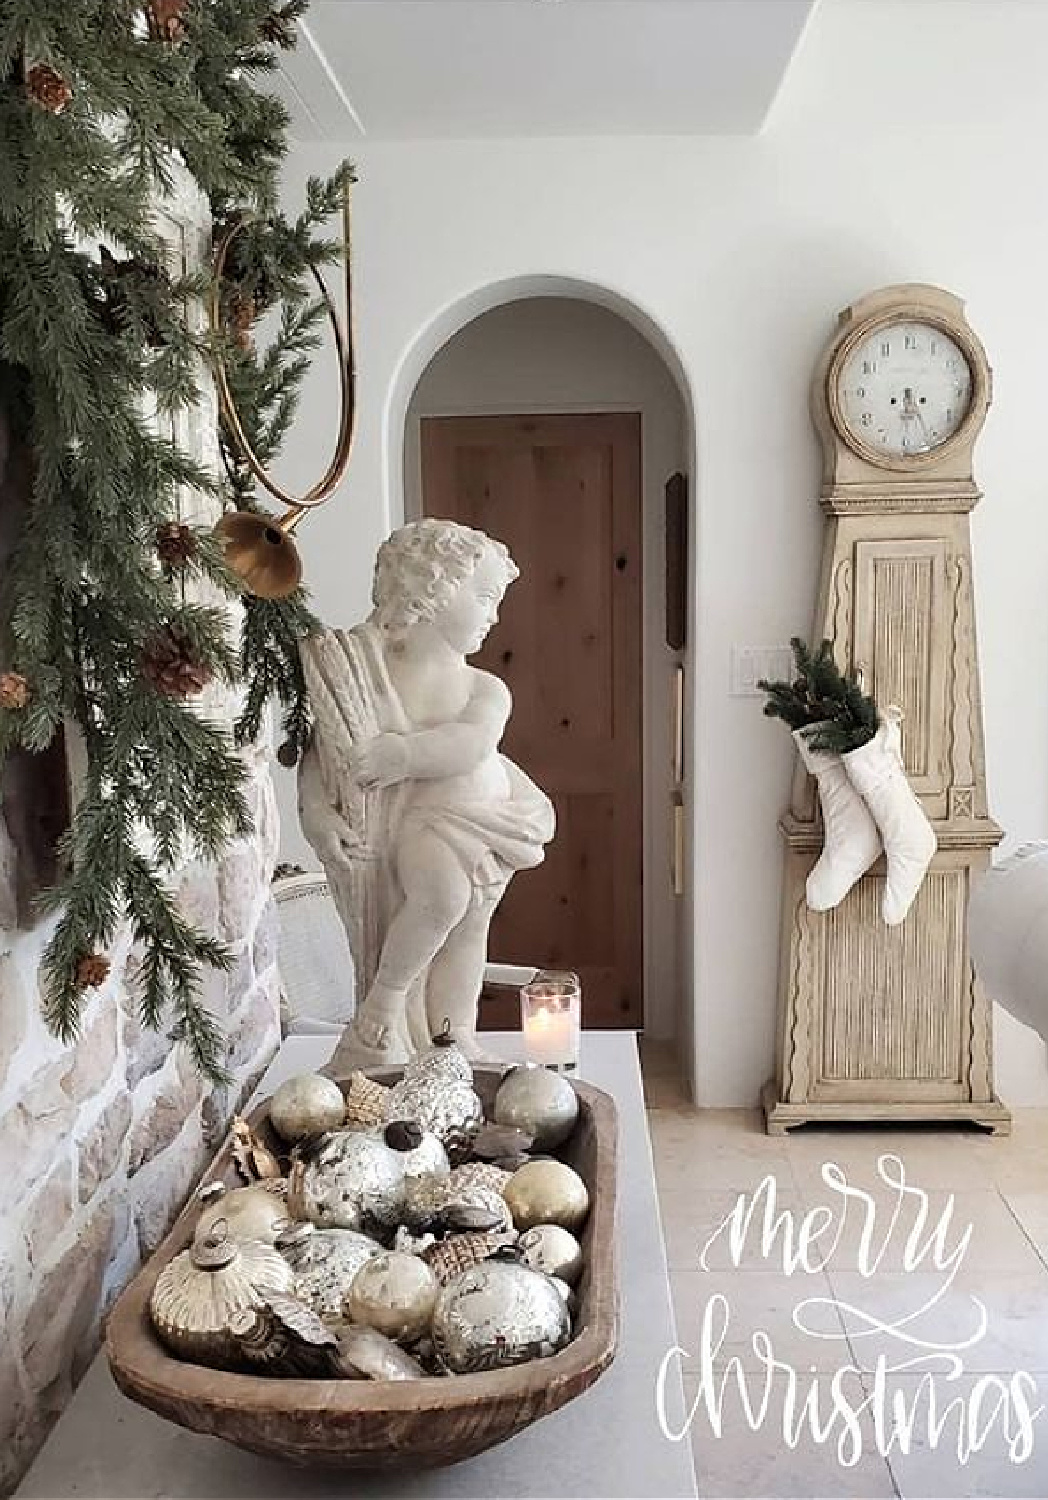 Breathtaking French country Christmas decor with white stockings hung from Swedish clock, cherub, wreath, and dough bowl with silver balls - The French Nest Co Interior Design